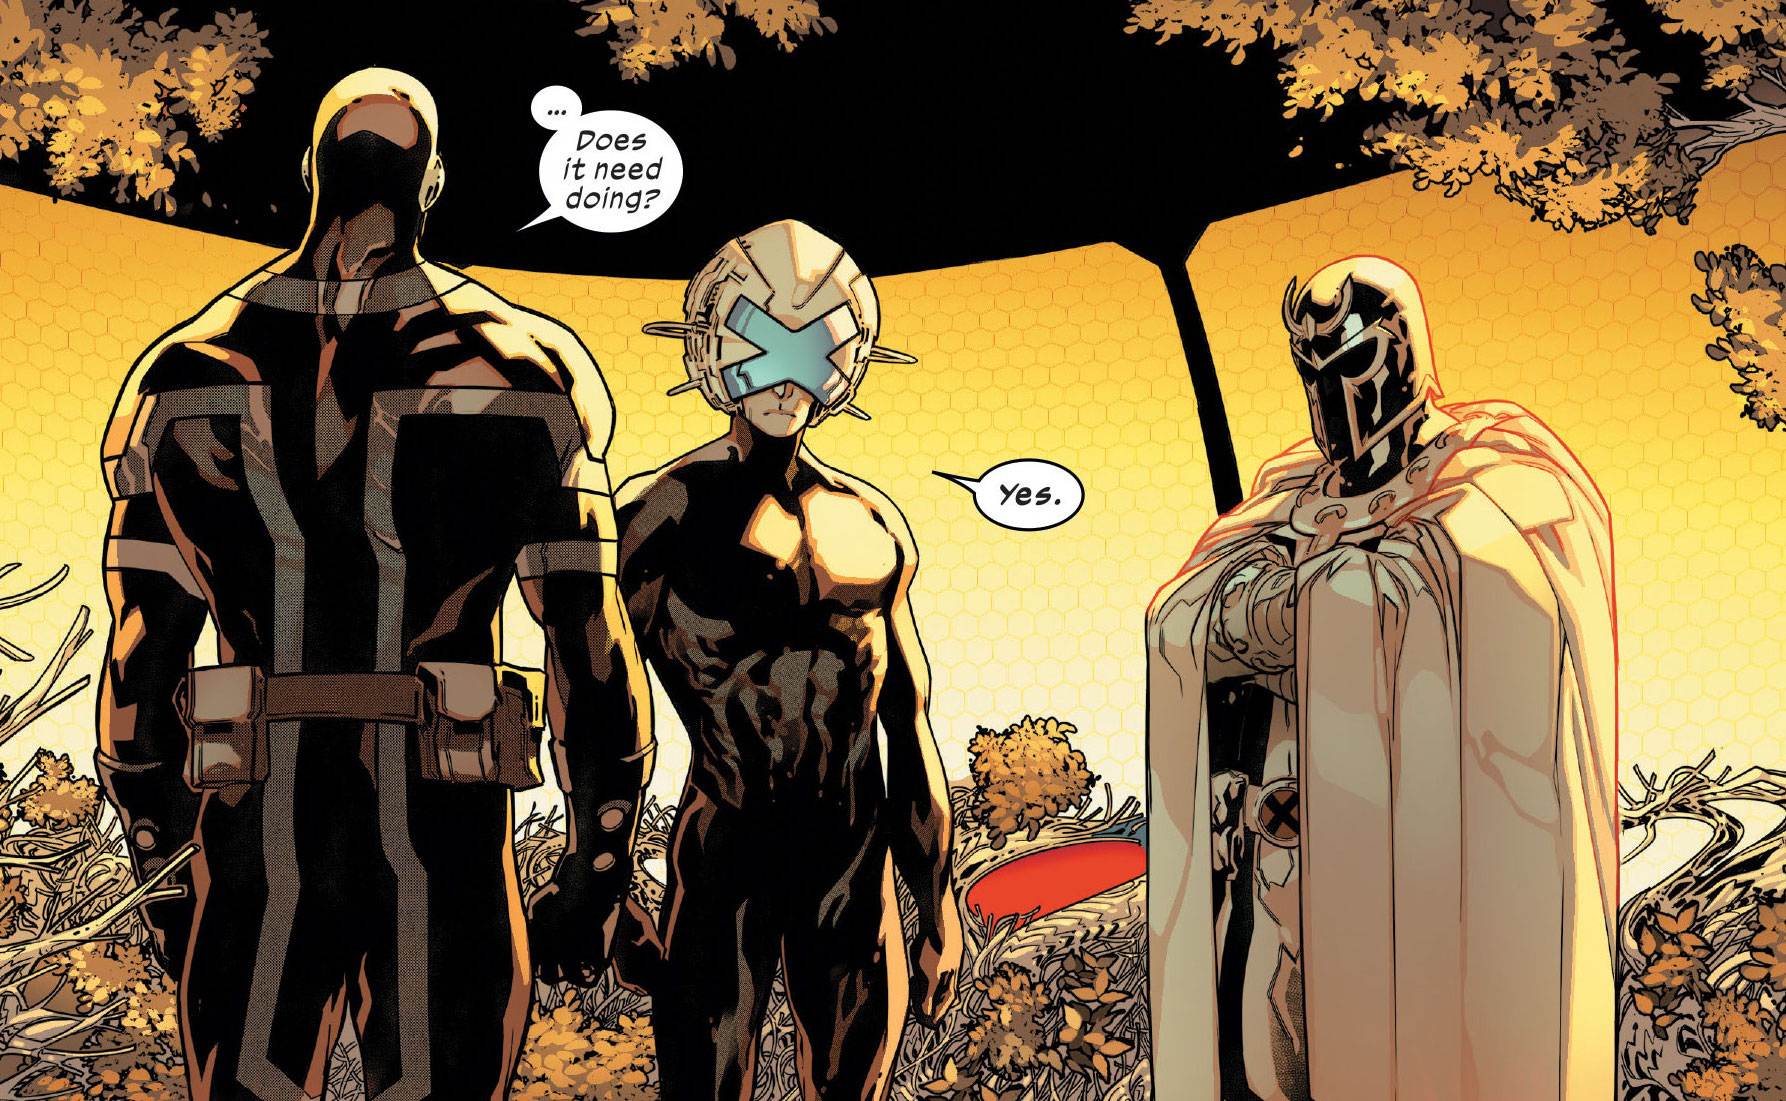 Powers of X #2 raises more questions about the X-Men's past and future